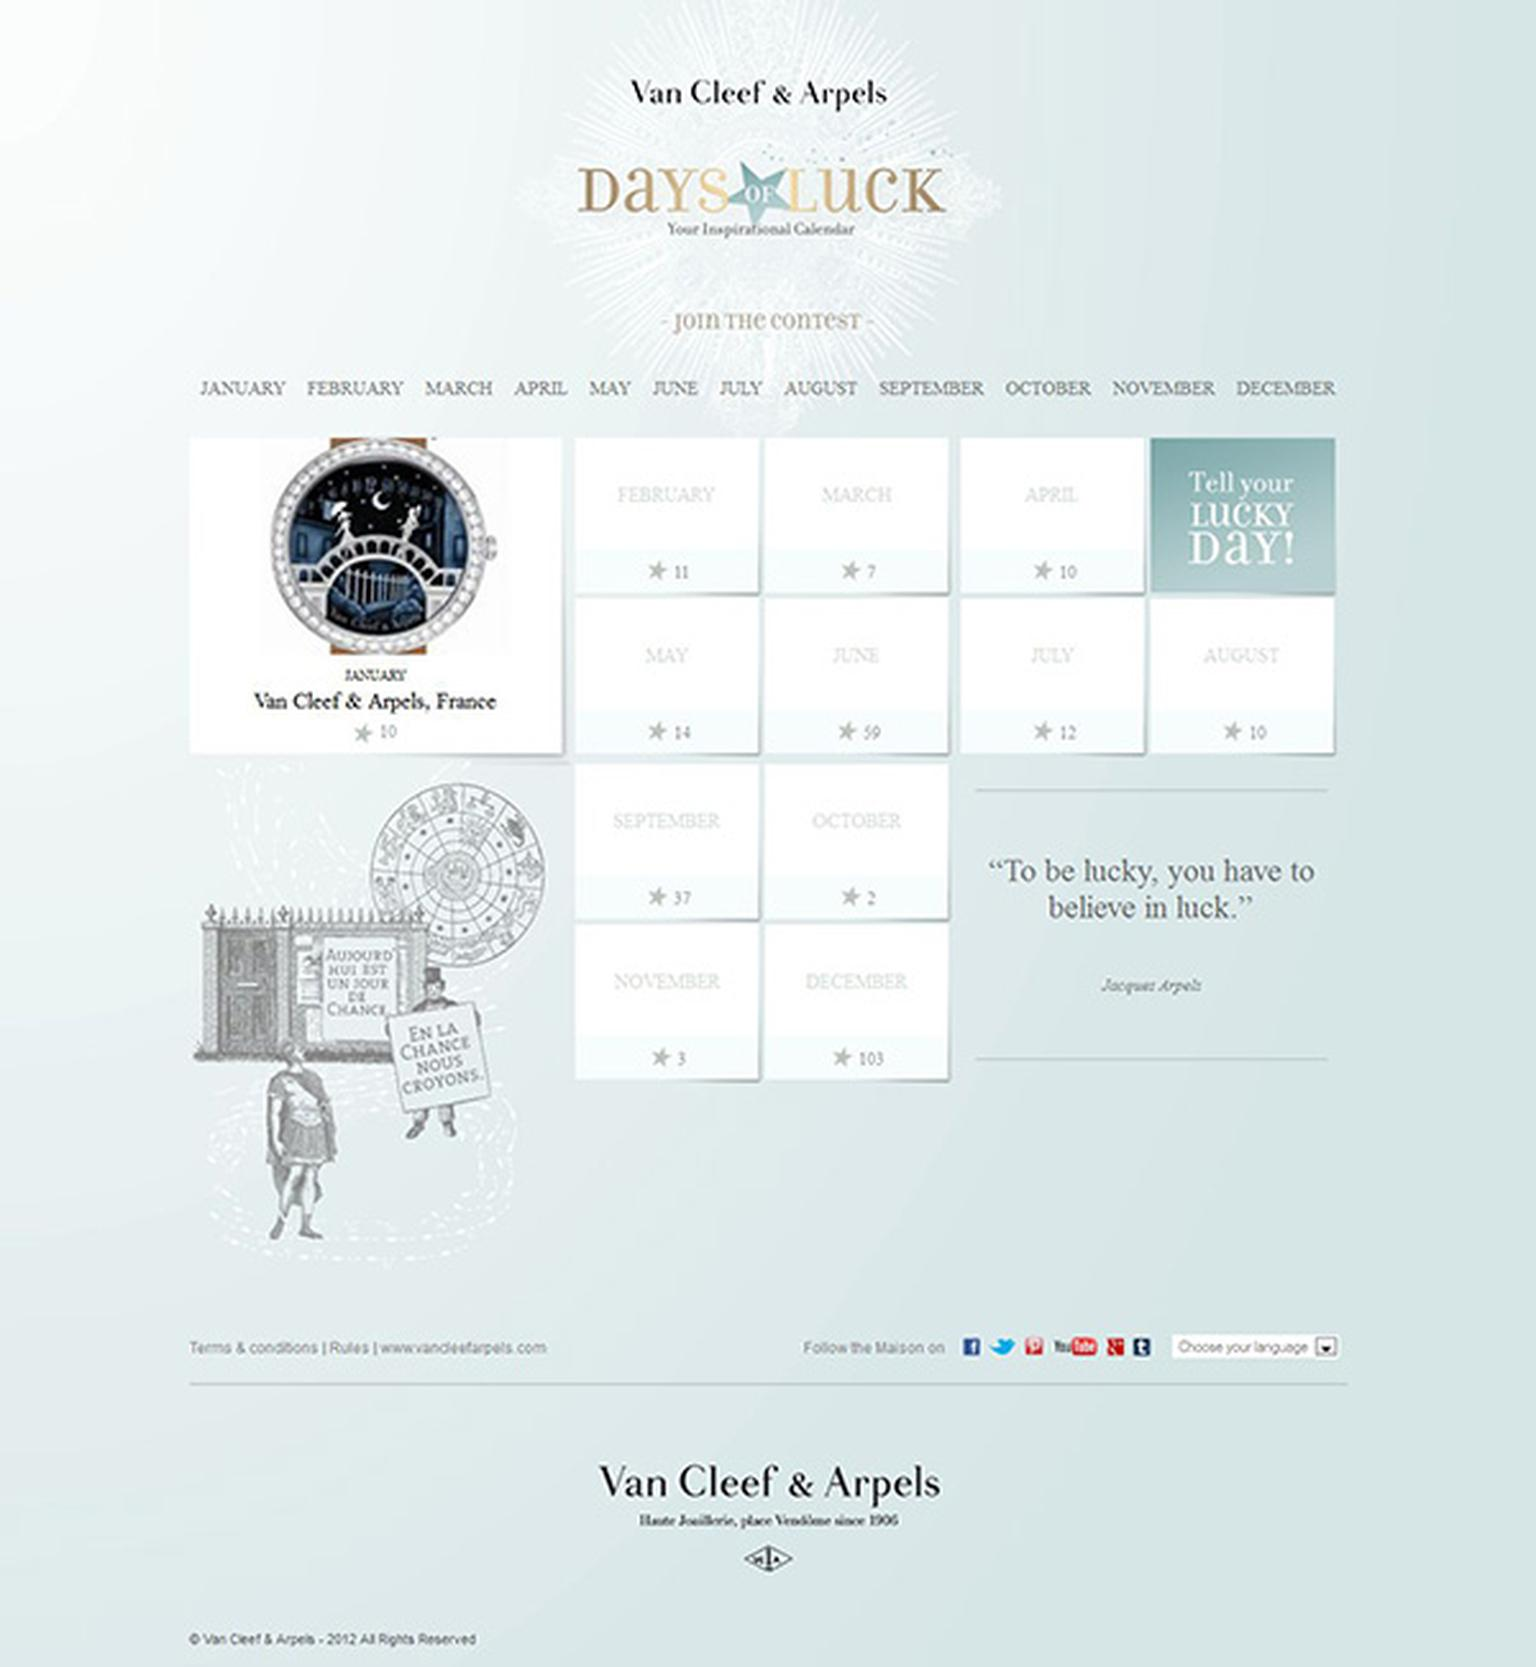 Days-of-Luck-by-Van-Cleef-Arpels---2.jpg